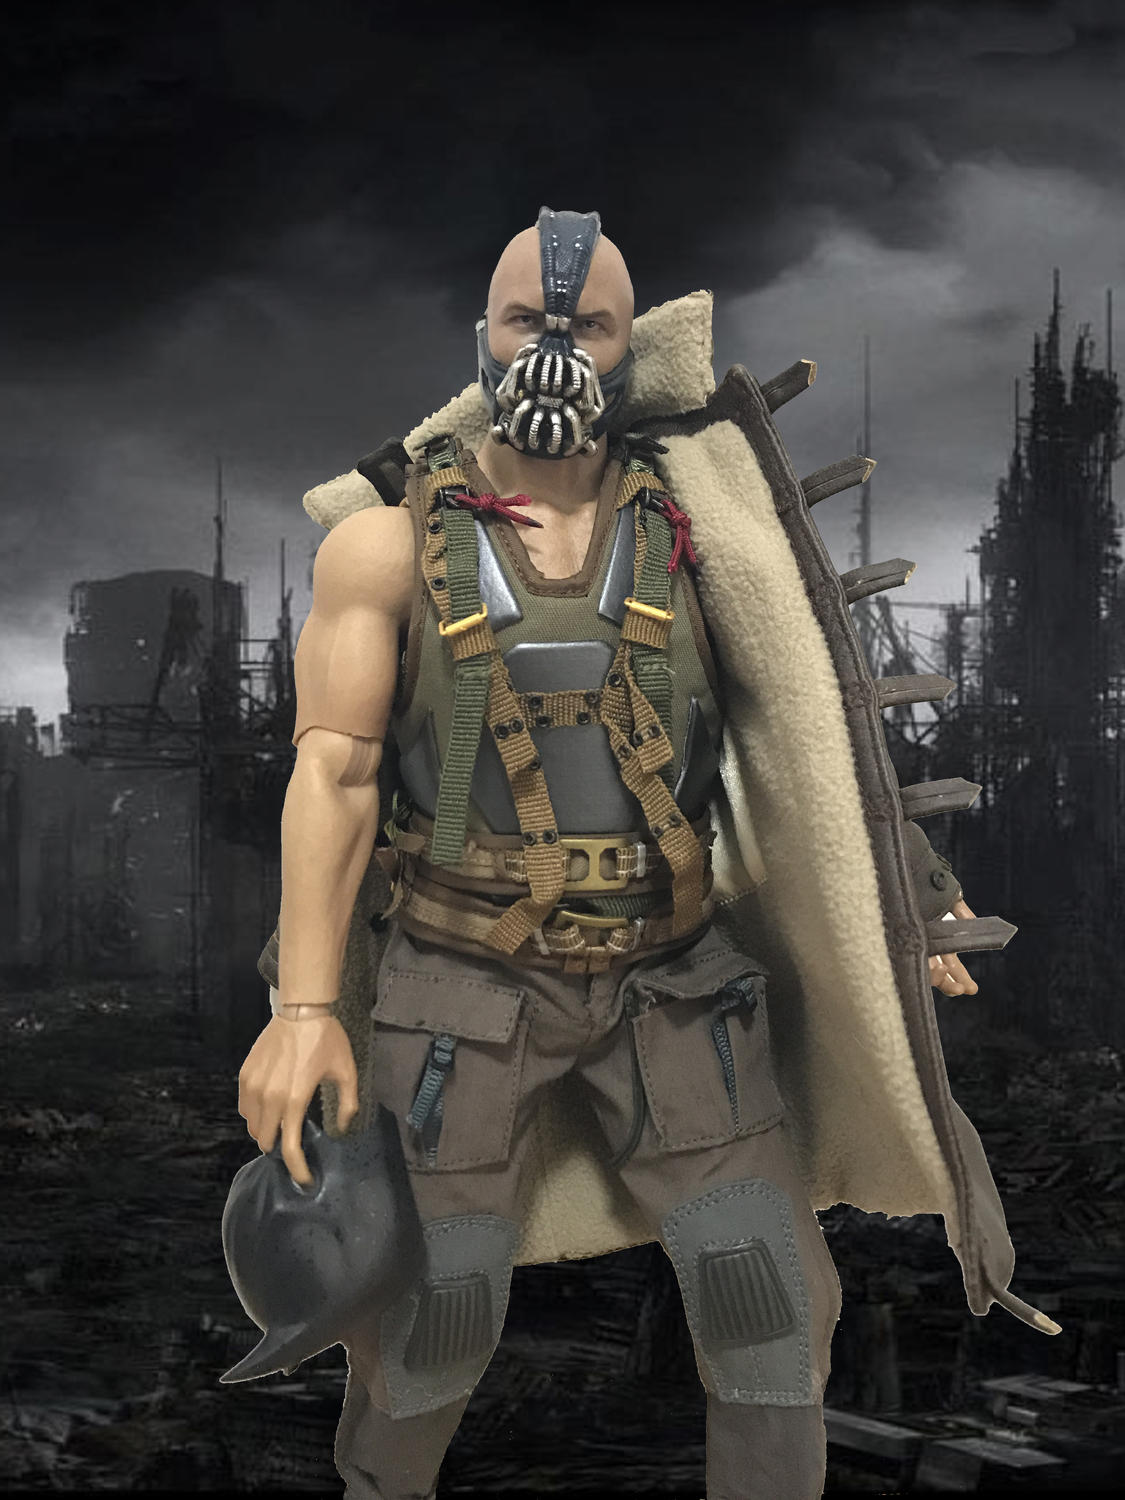 Bane The Dark Knight 1 6 Custom Action Figure Set Toy Discussion Circuit Breaker By Bad Moon At Toyarkcom 11